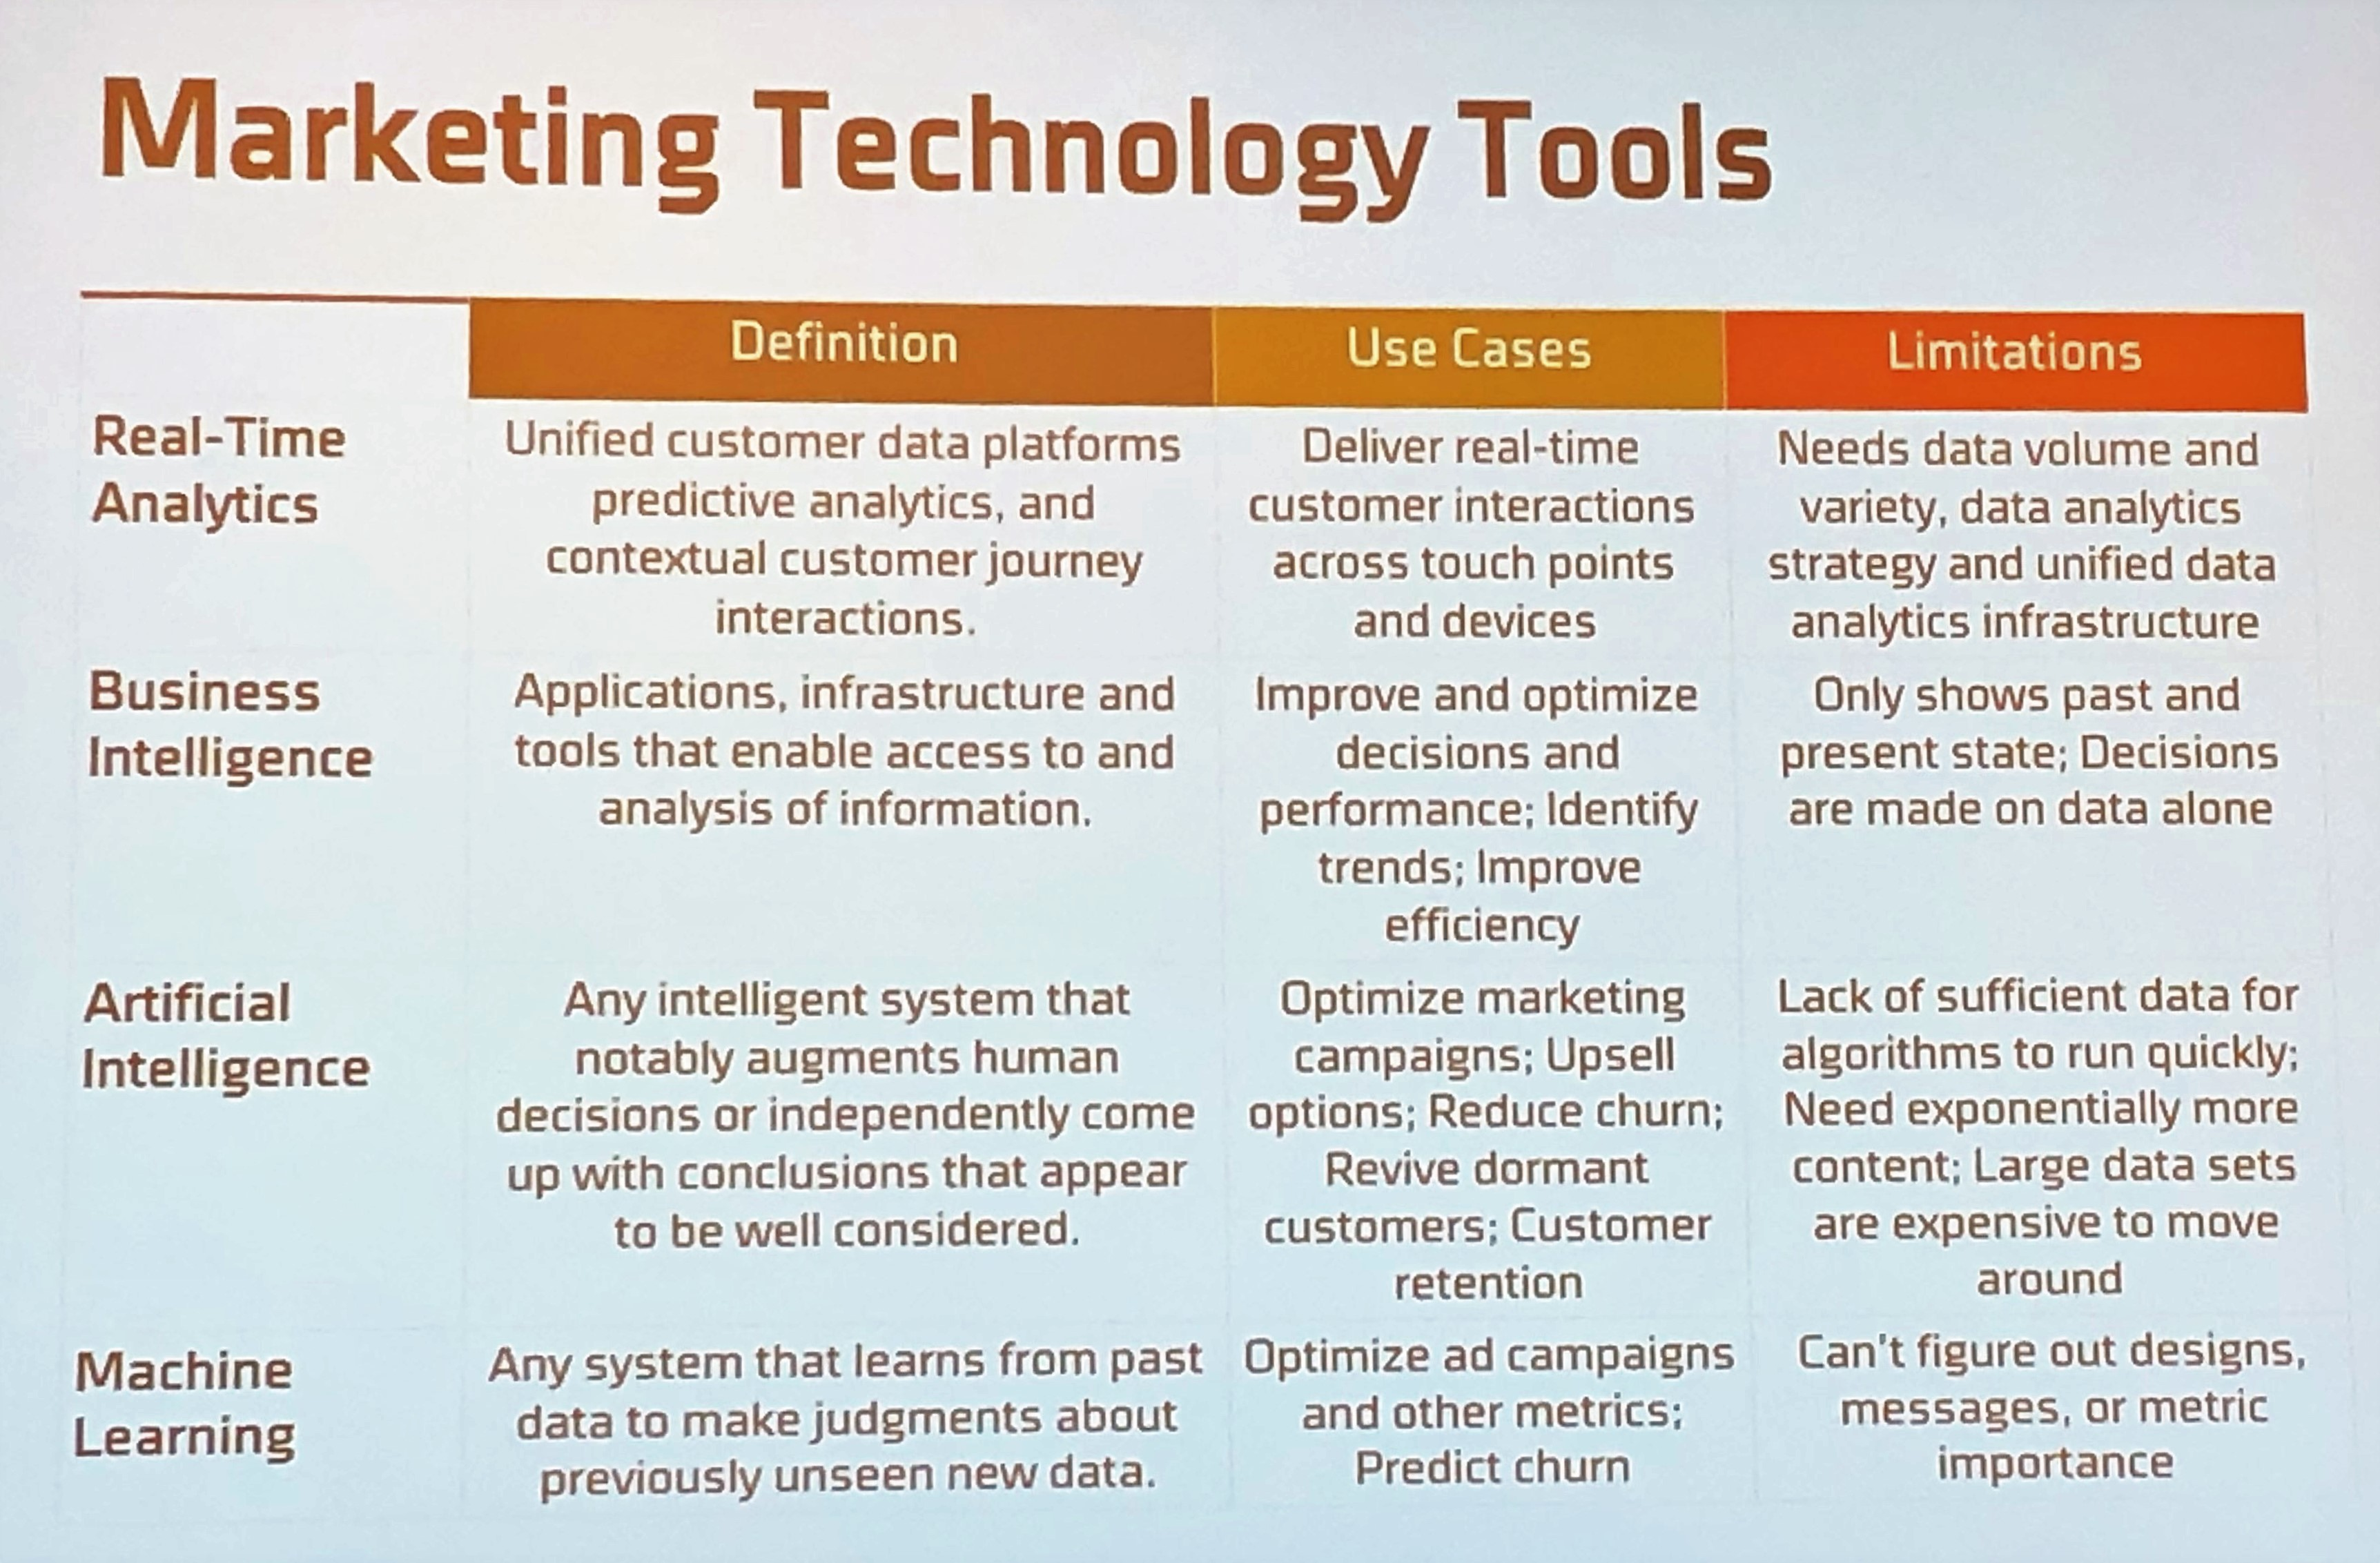 Marketing Technology Tools